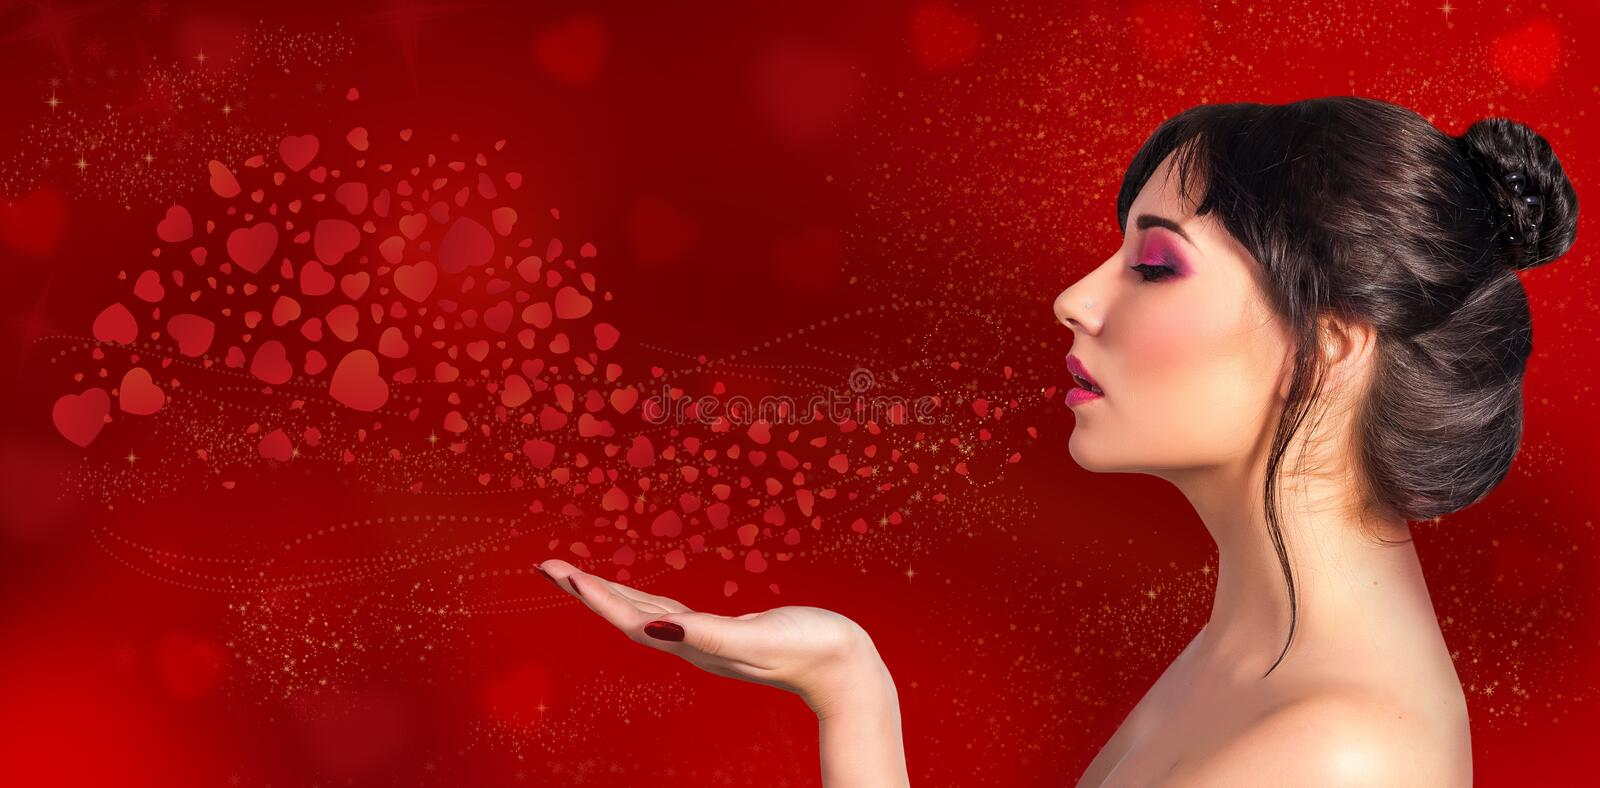 A beautiful woman blows on her hand and red hearts fly on a holiday red background. Composition to Valentine Day, girl on red background with a copy space stock image